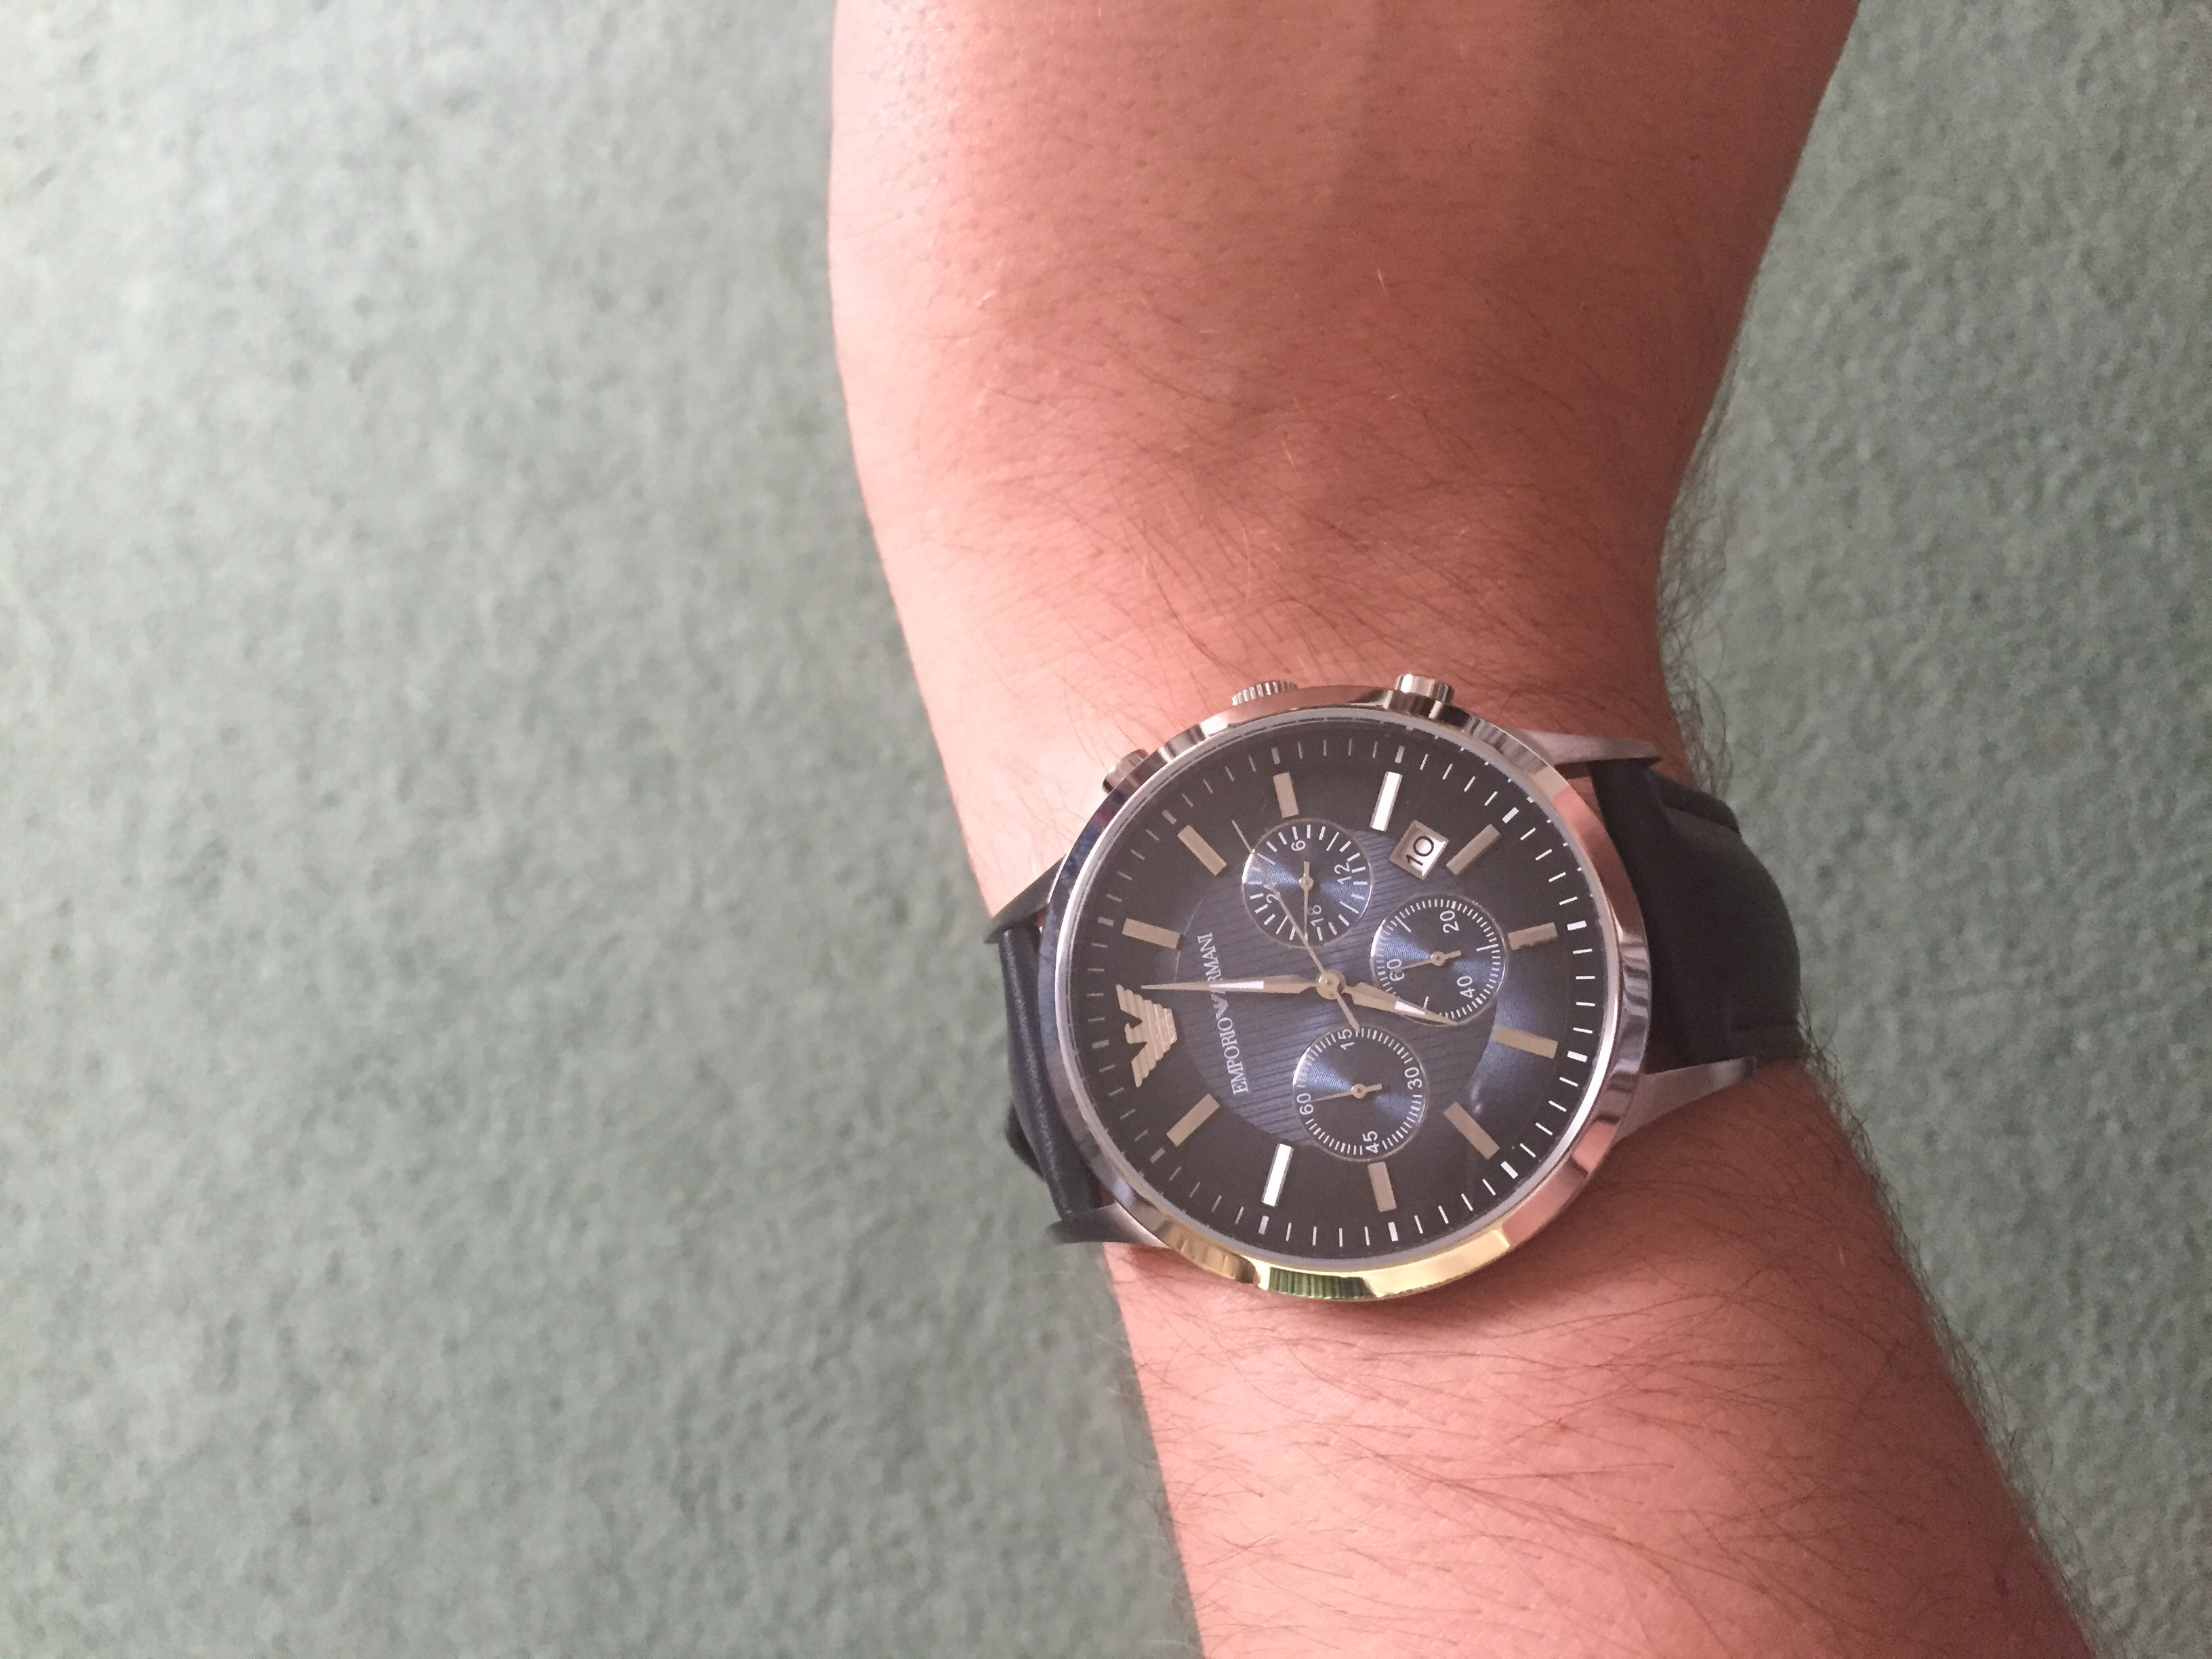 aedd440522f Ordered this along with another watch and have to say this one has blown  the other out of the water! The blue leather strap and blue face are  perfect and ...